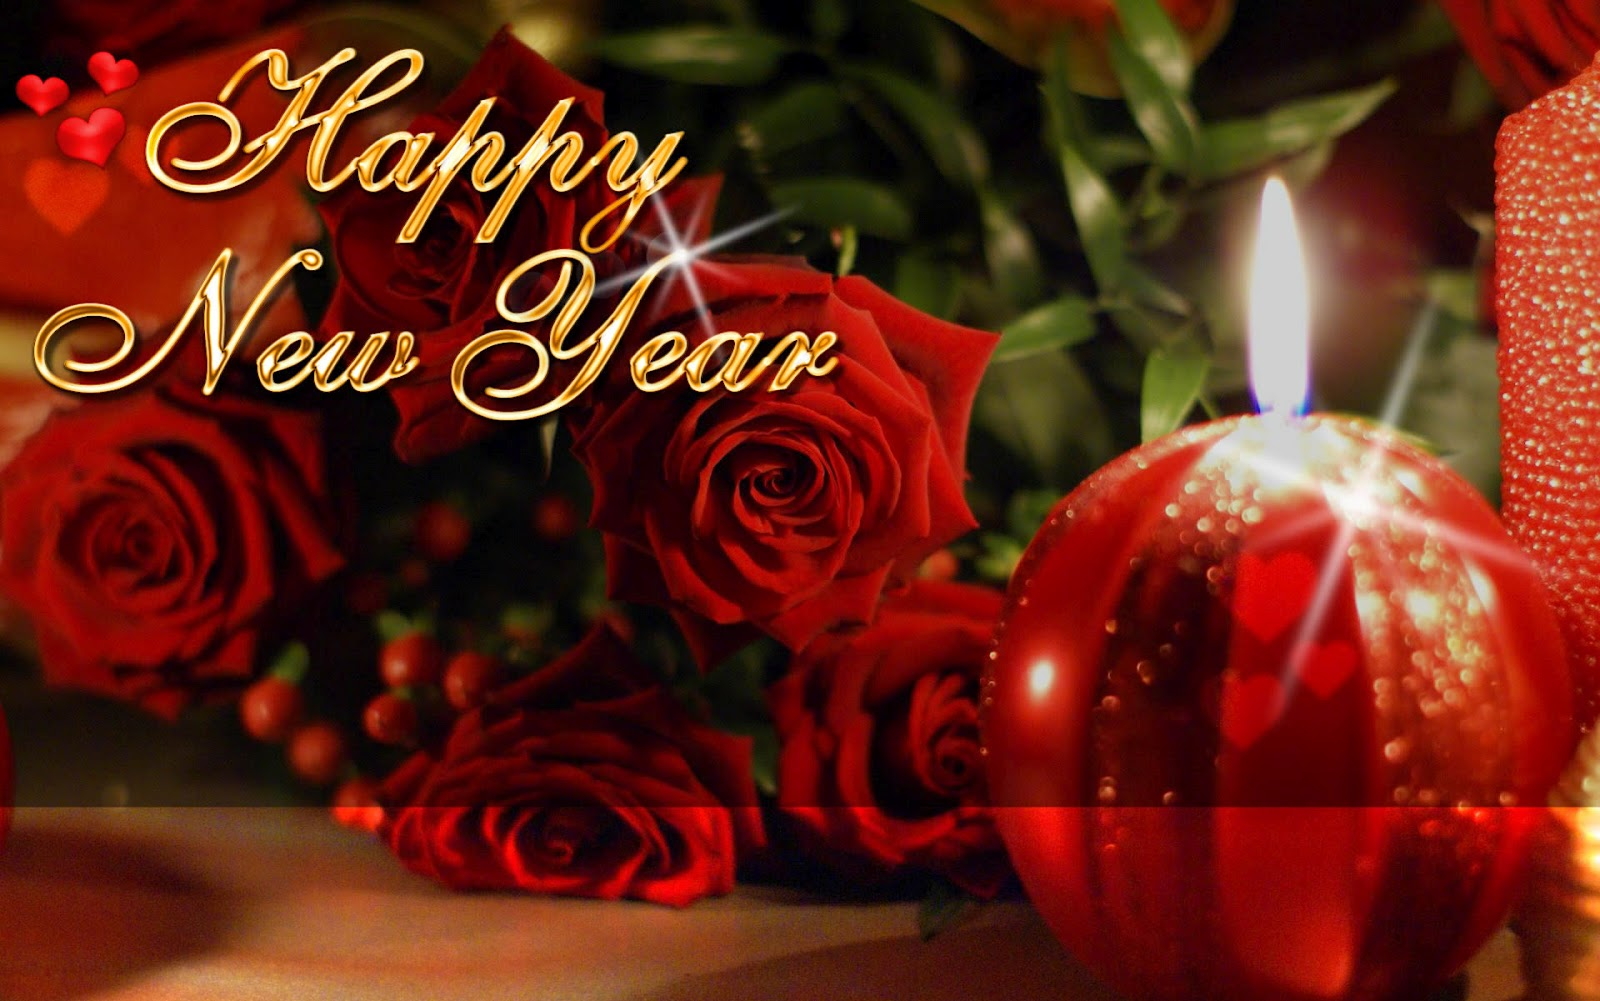 2016 3D Wallpapers Download Happy New Year 2016 3D Wallpapers 1600x1001